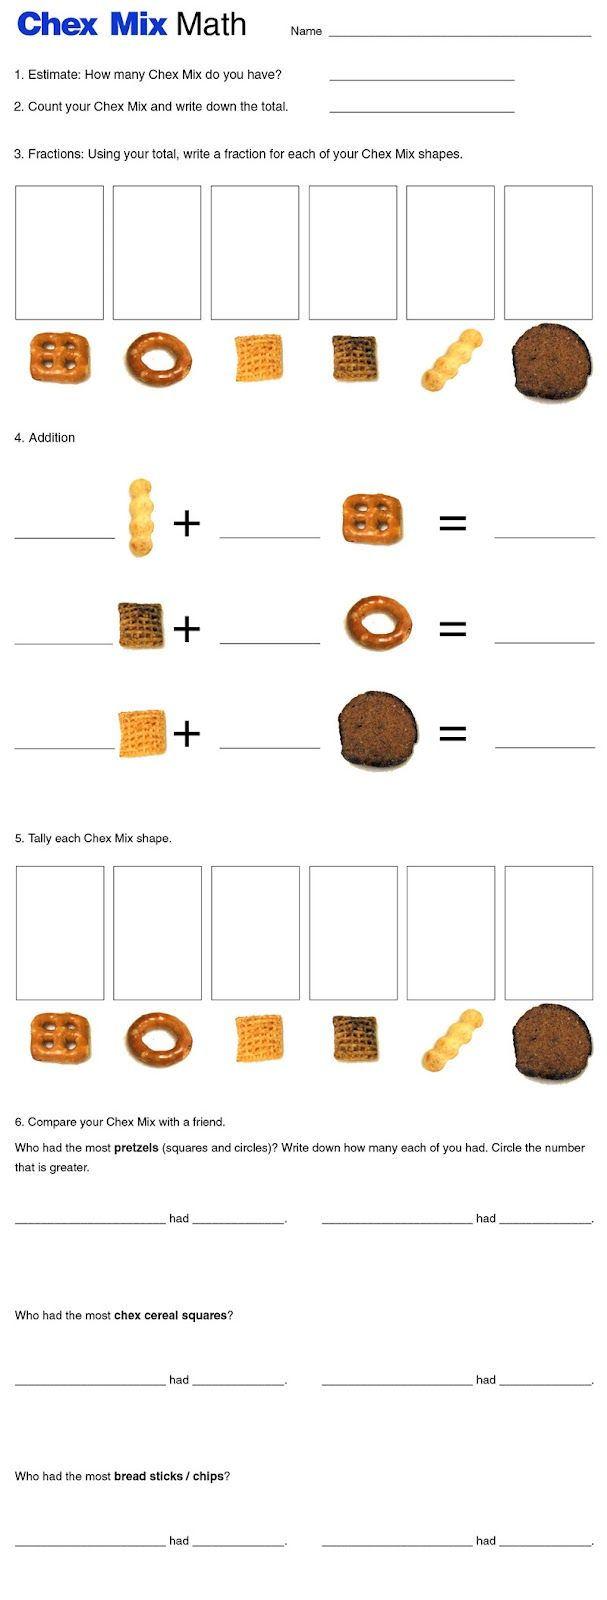 Chex Mix Math : fun review activity --> estimate, write fractions, add, tally, sort, and compare!